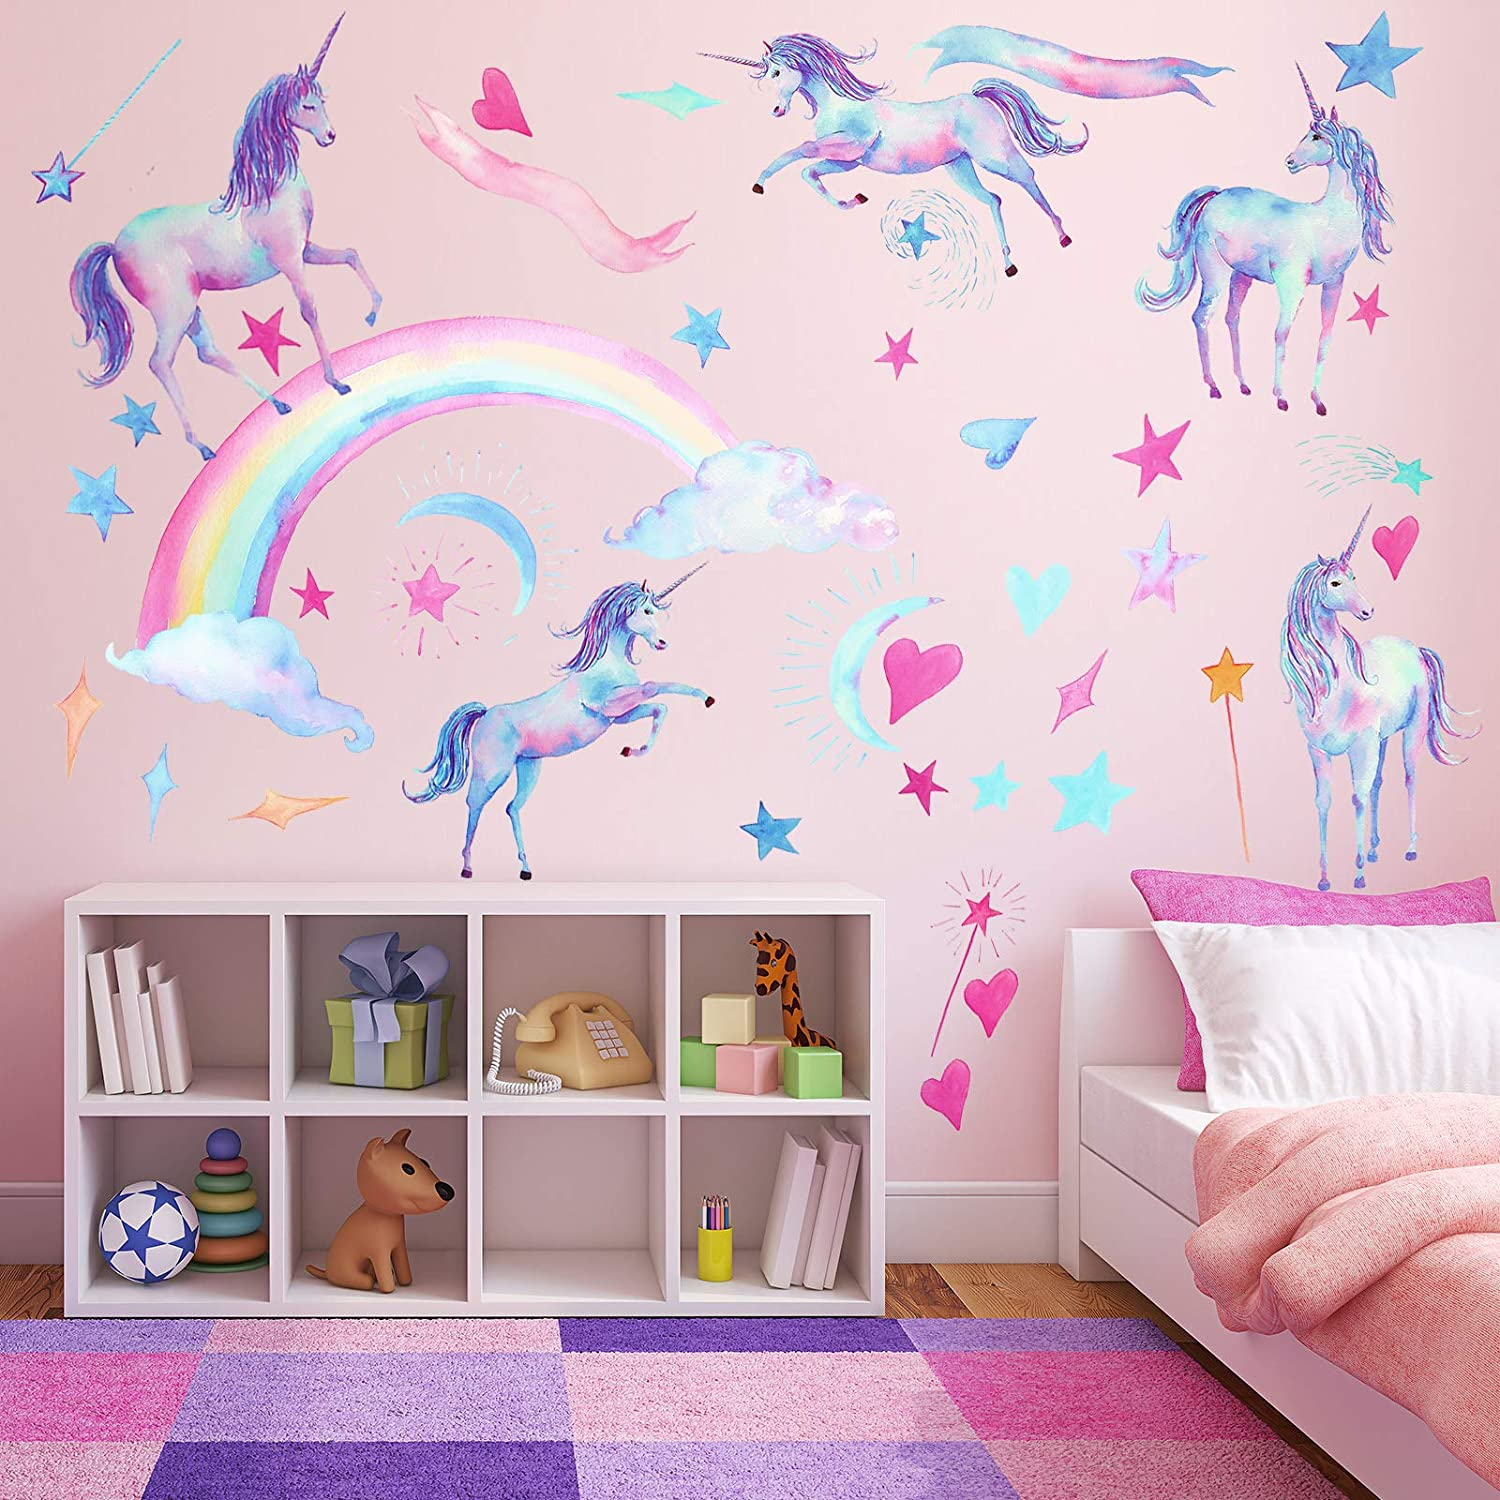 Unicorn Rainbow Wall Decal Watercolor Unicorn Wall Sticker Removable Unicorn Decor Sticker Star Cloud Wall Decals for Kids DIY Room Party Playroom Bedroom Living Room Decoration